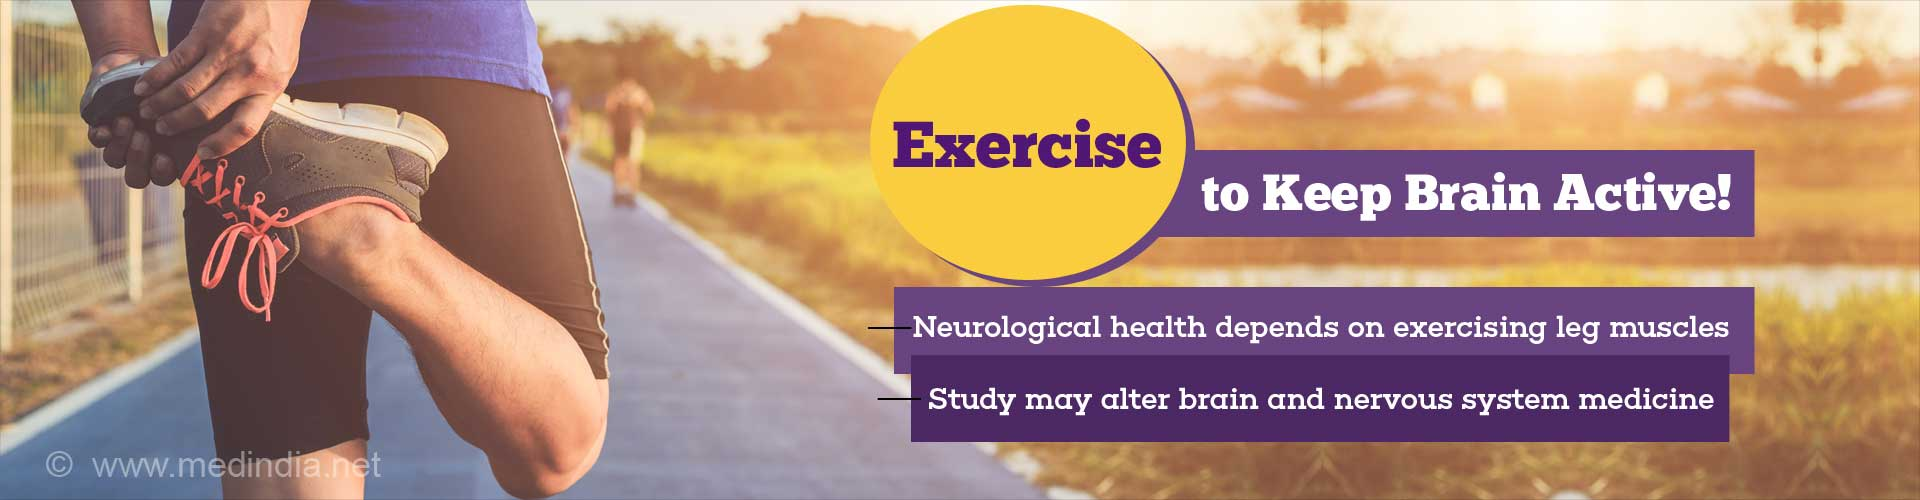 Exercising Leg Muscles Critical to Neurological Health